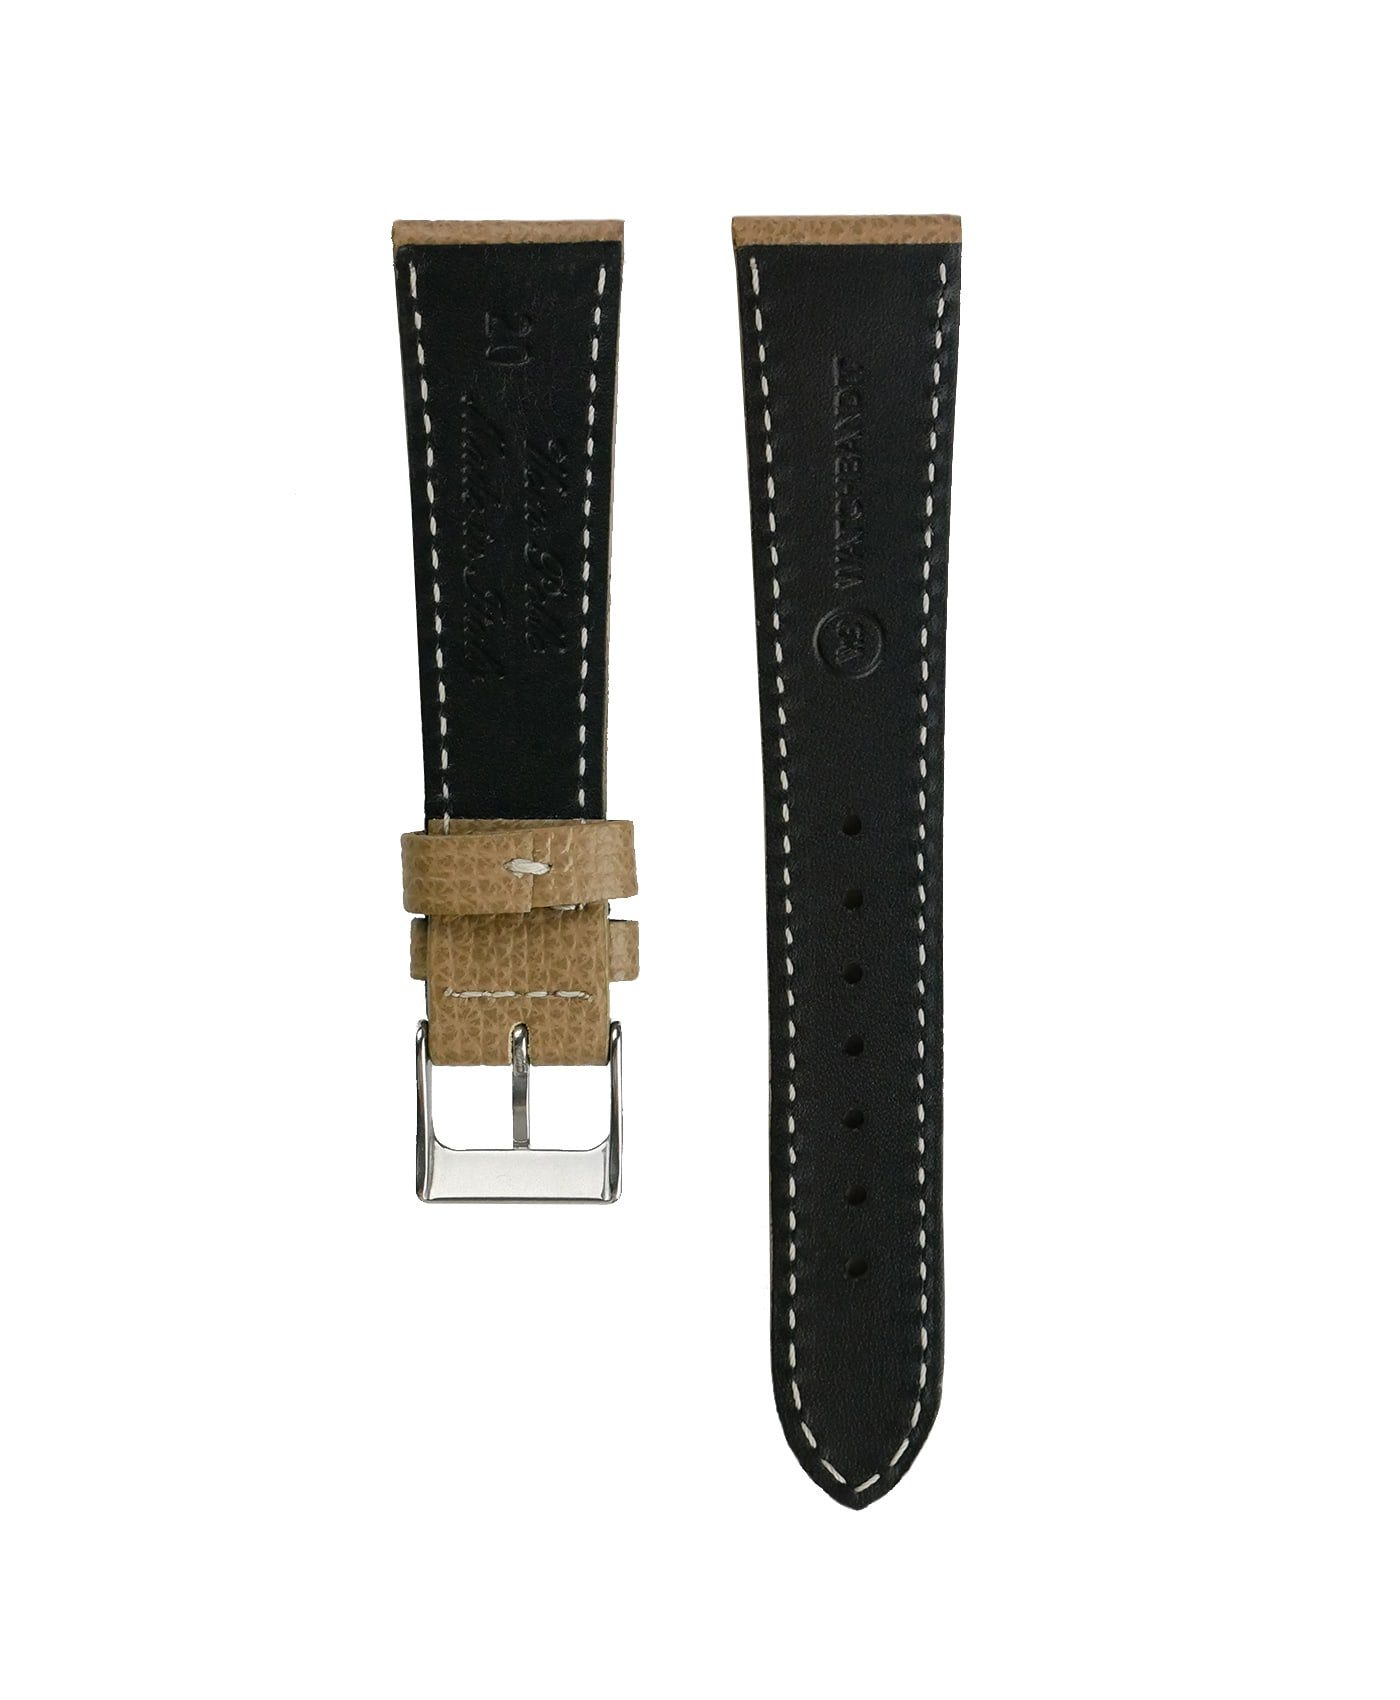 Textured calfskin leather watch strap beige back watchbandit